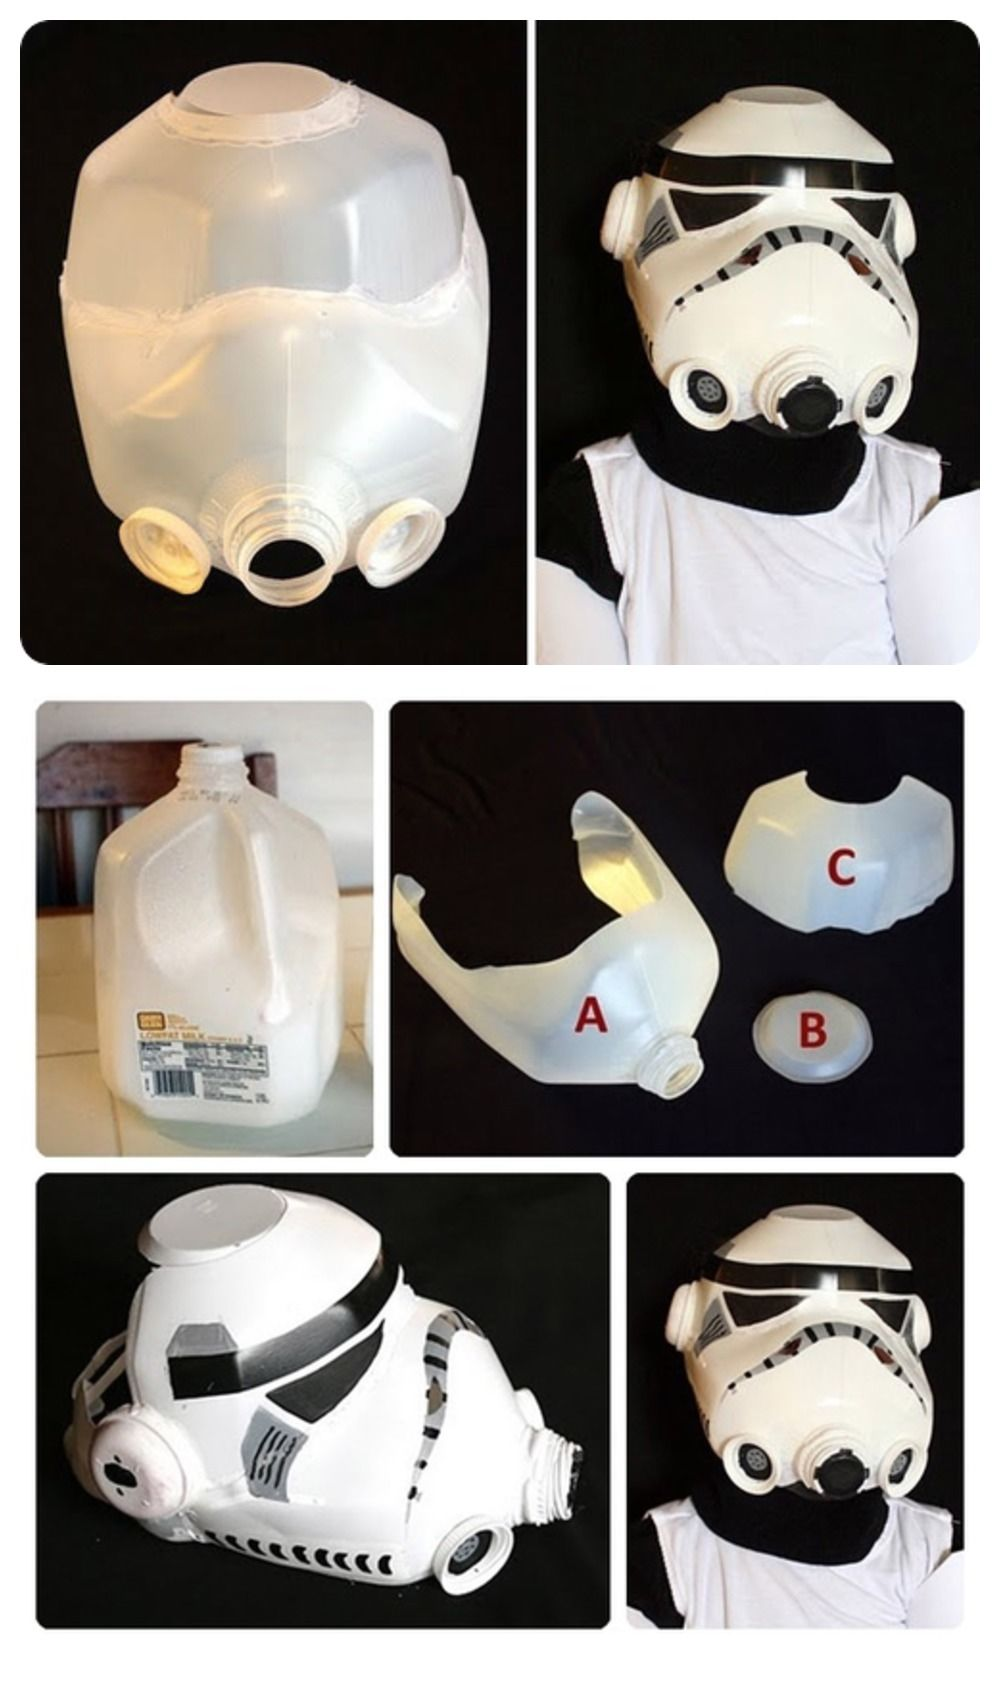 Diy storm trooper helmet pictures photos and images for facebook diy storm trooper helmet solutioingenieria Gallery